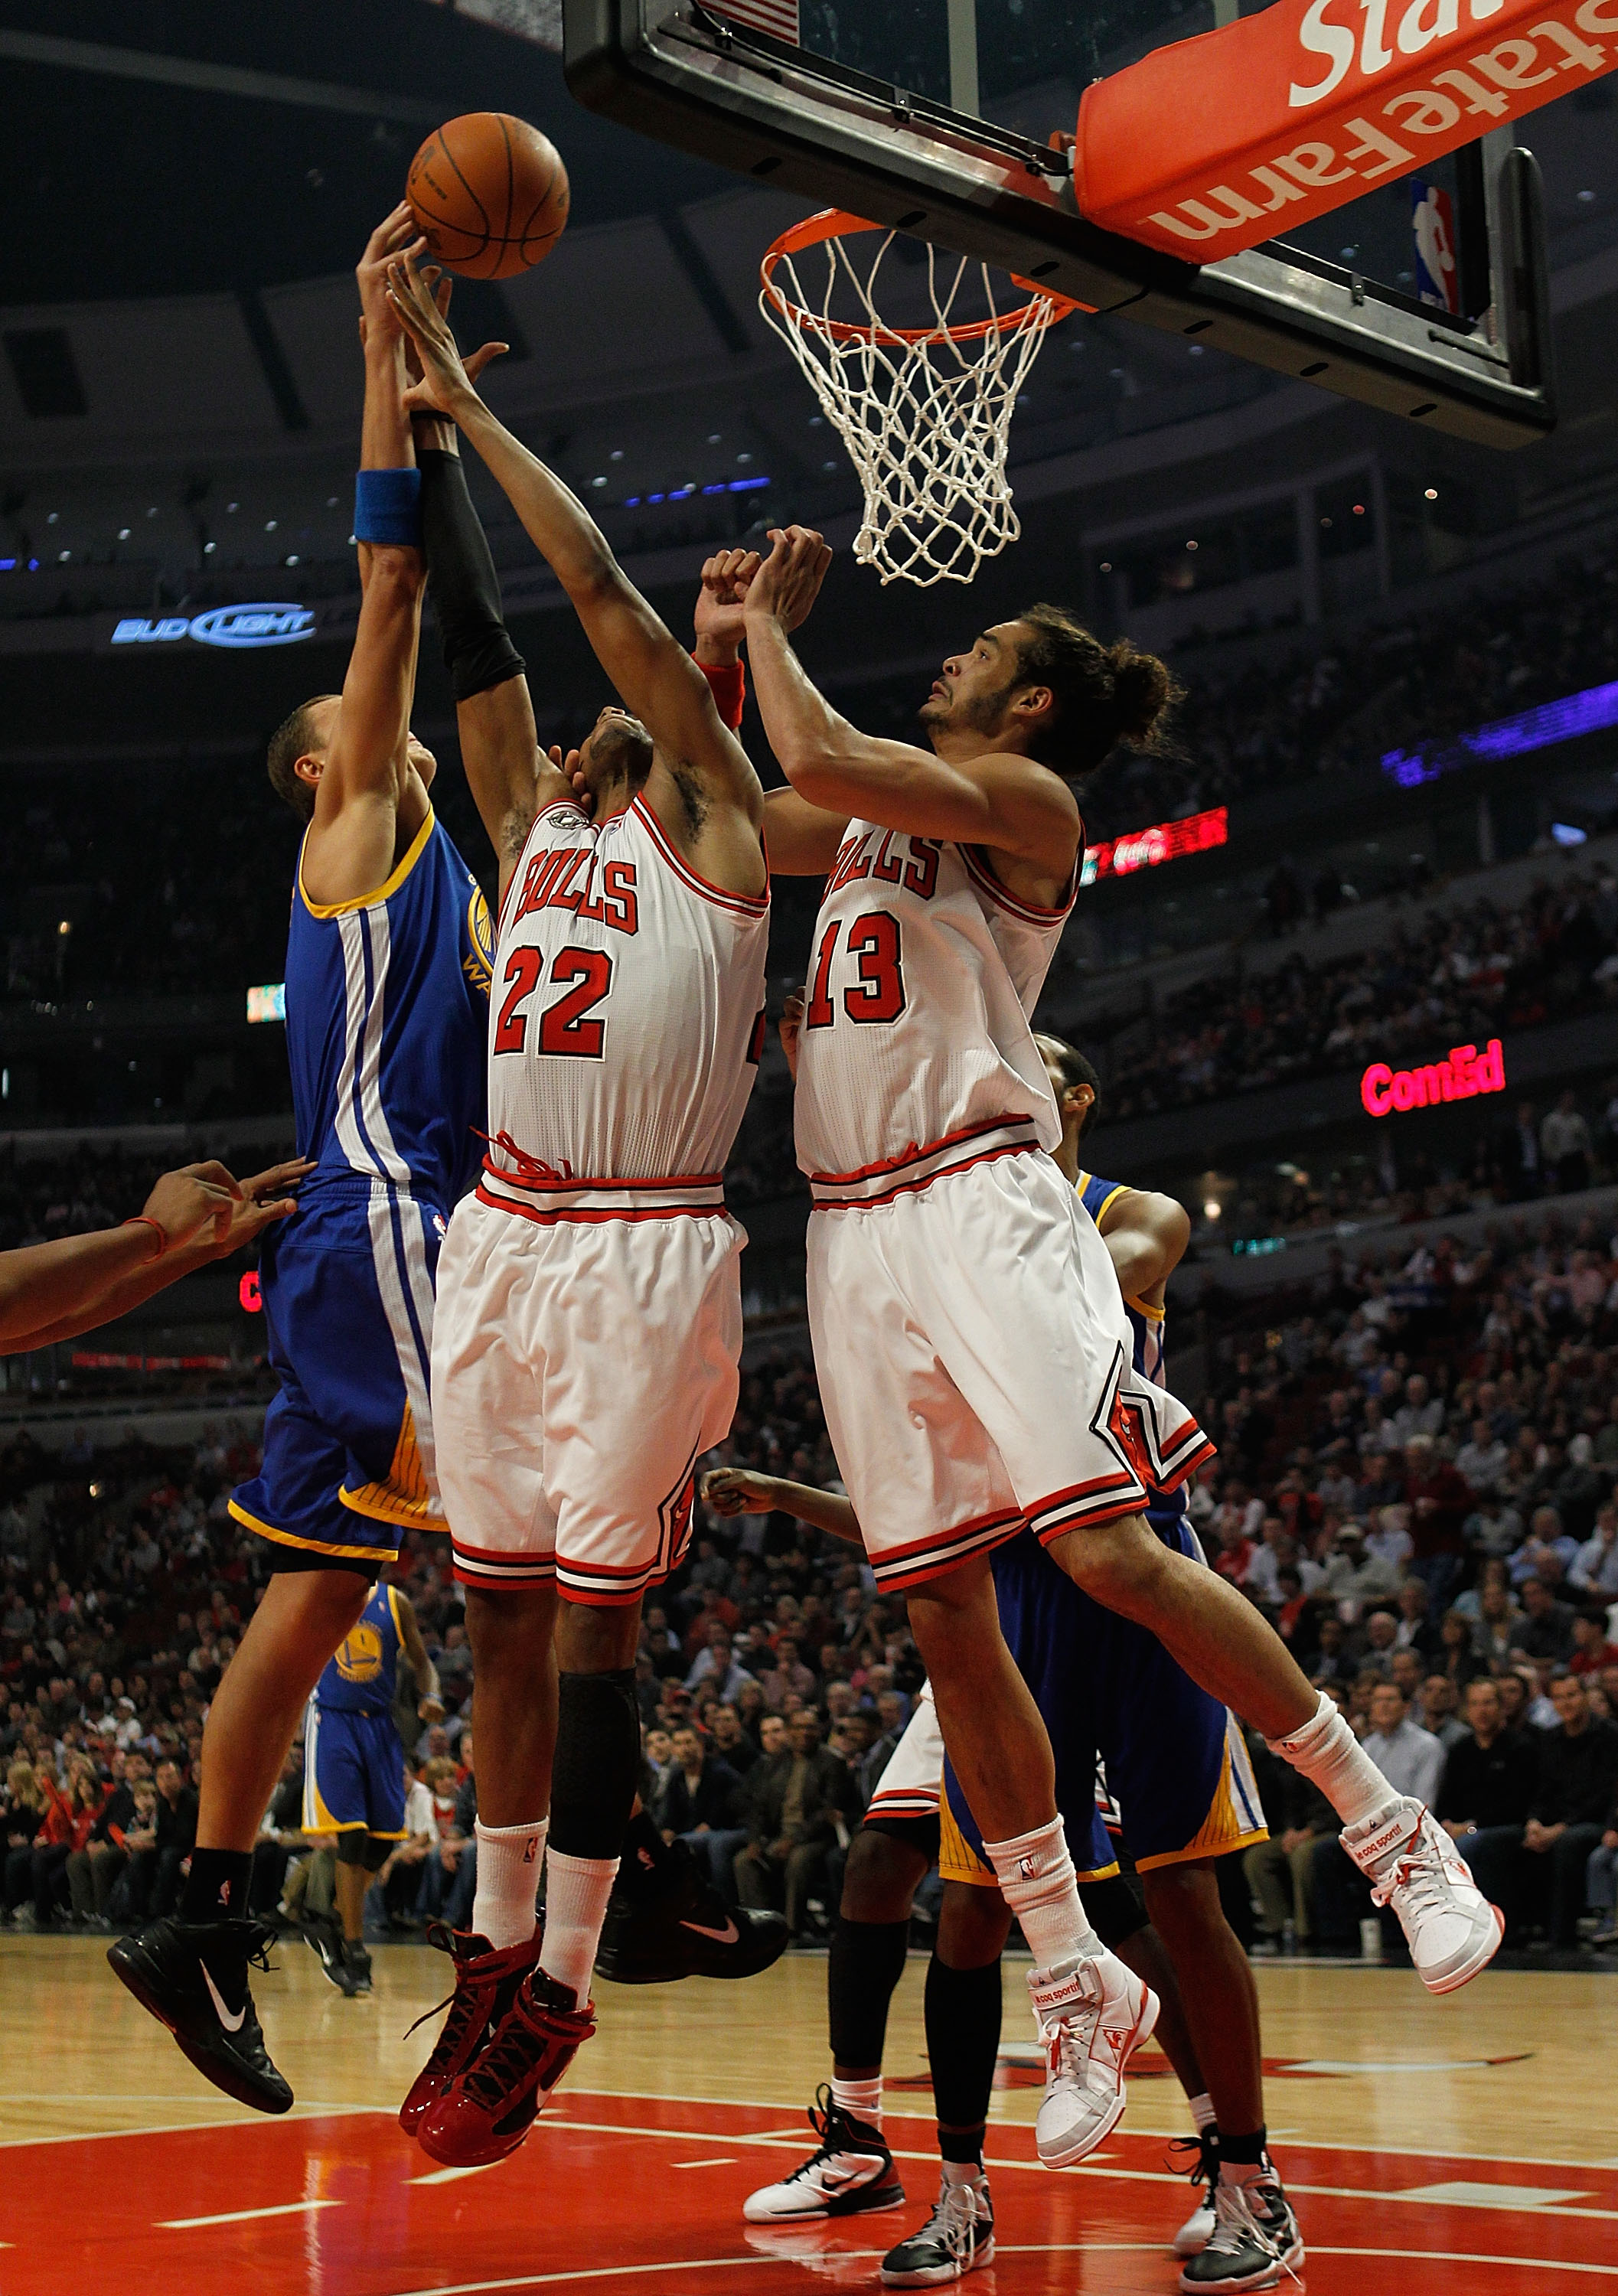 CHICAGO - NOVEMBER 11: Andris Biedrins #15 of the Golden State Warriors battles for a rebound with Taj Gibson #22 and Joakim Noah #13 of the Chicago Bulls at the United Center on November 11, 2010 in Chicago, Illinois. NOTE TO USER: User expressly acknowl